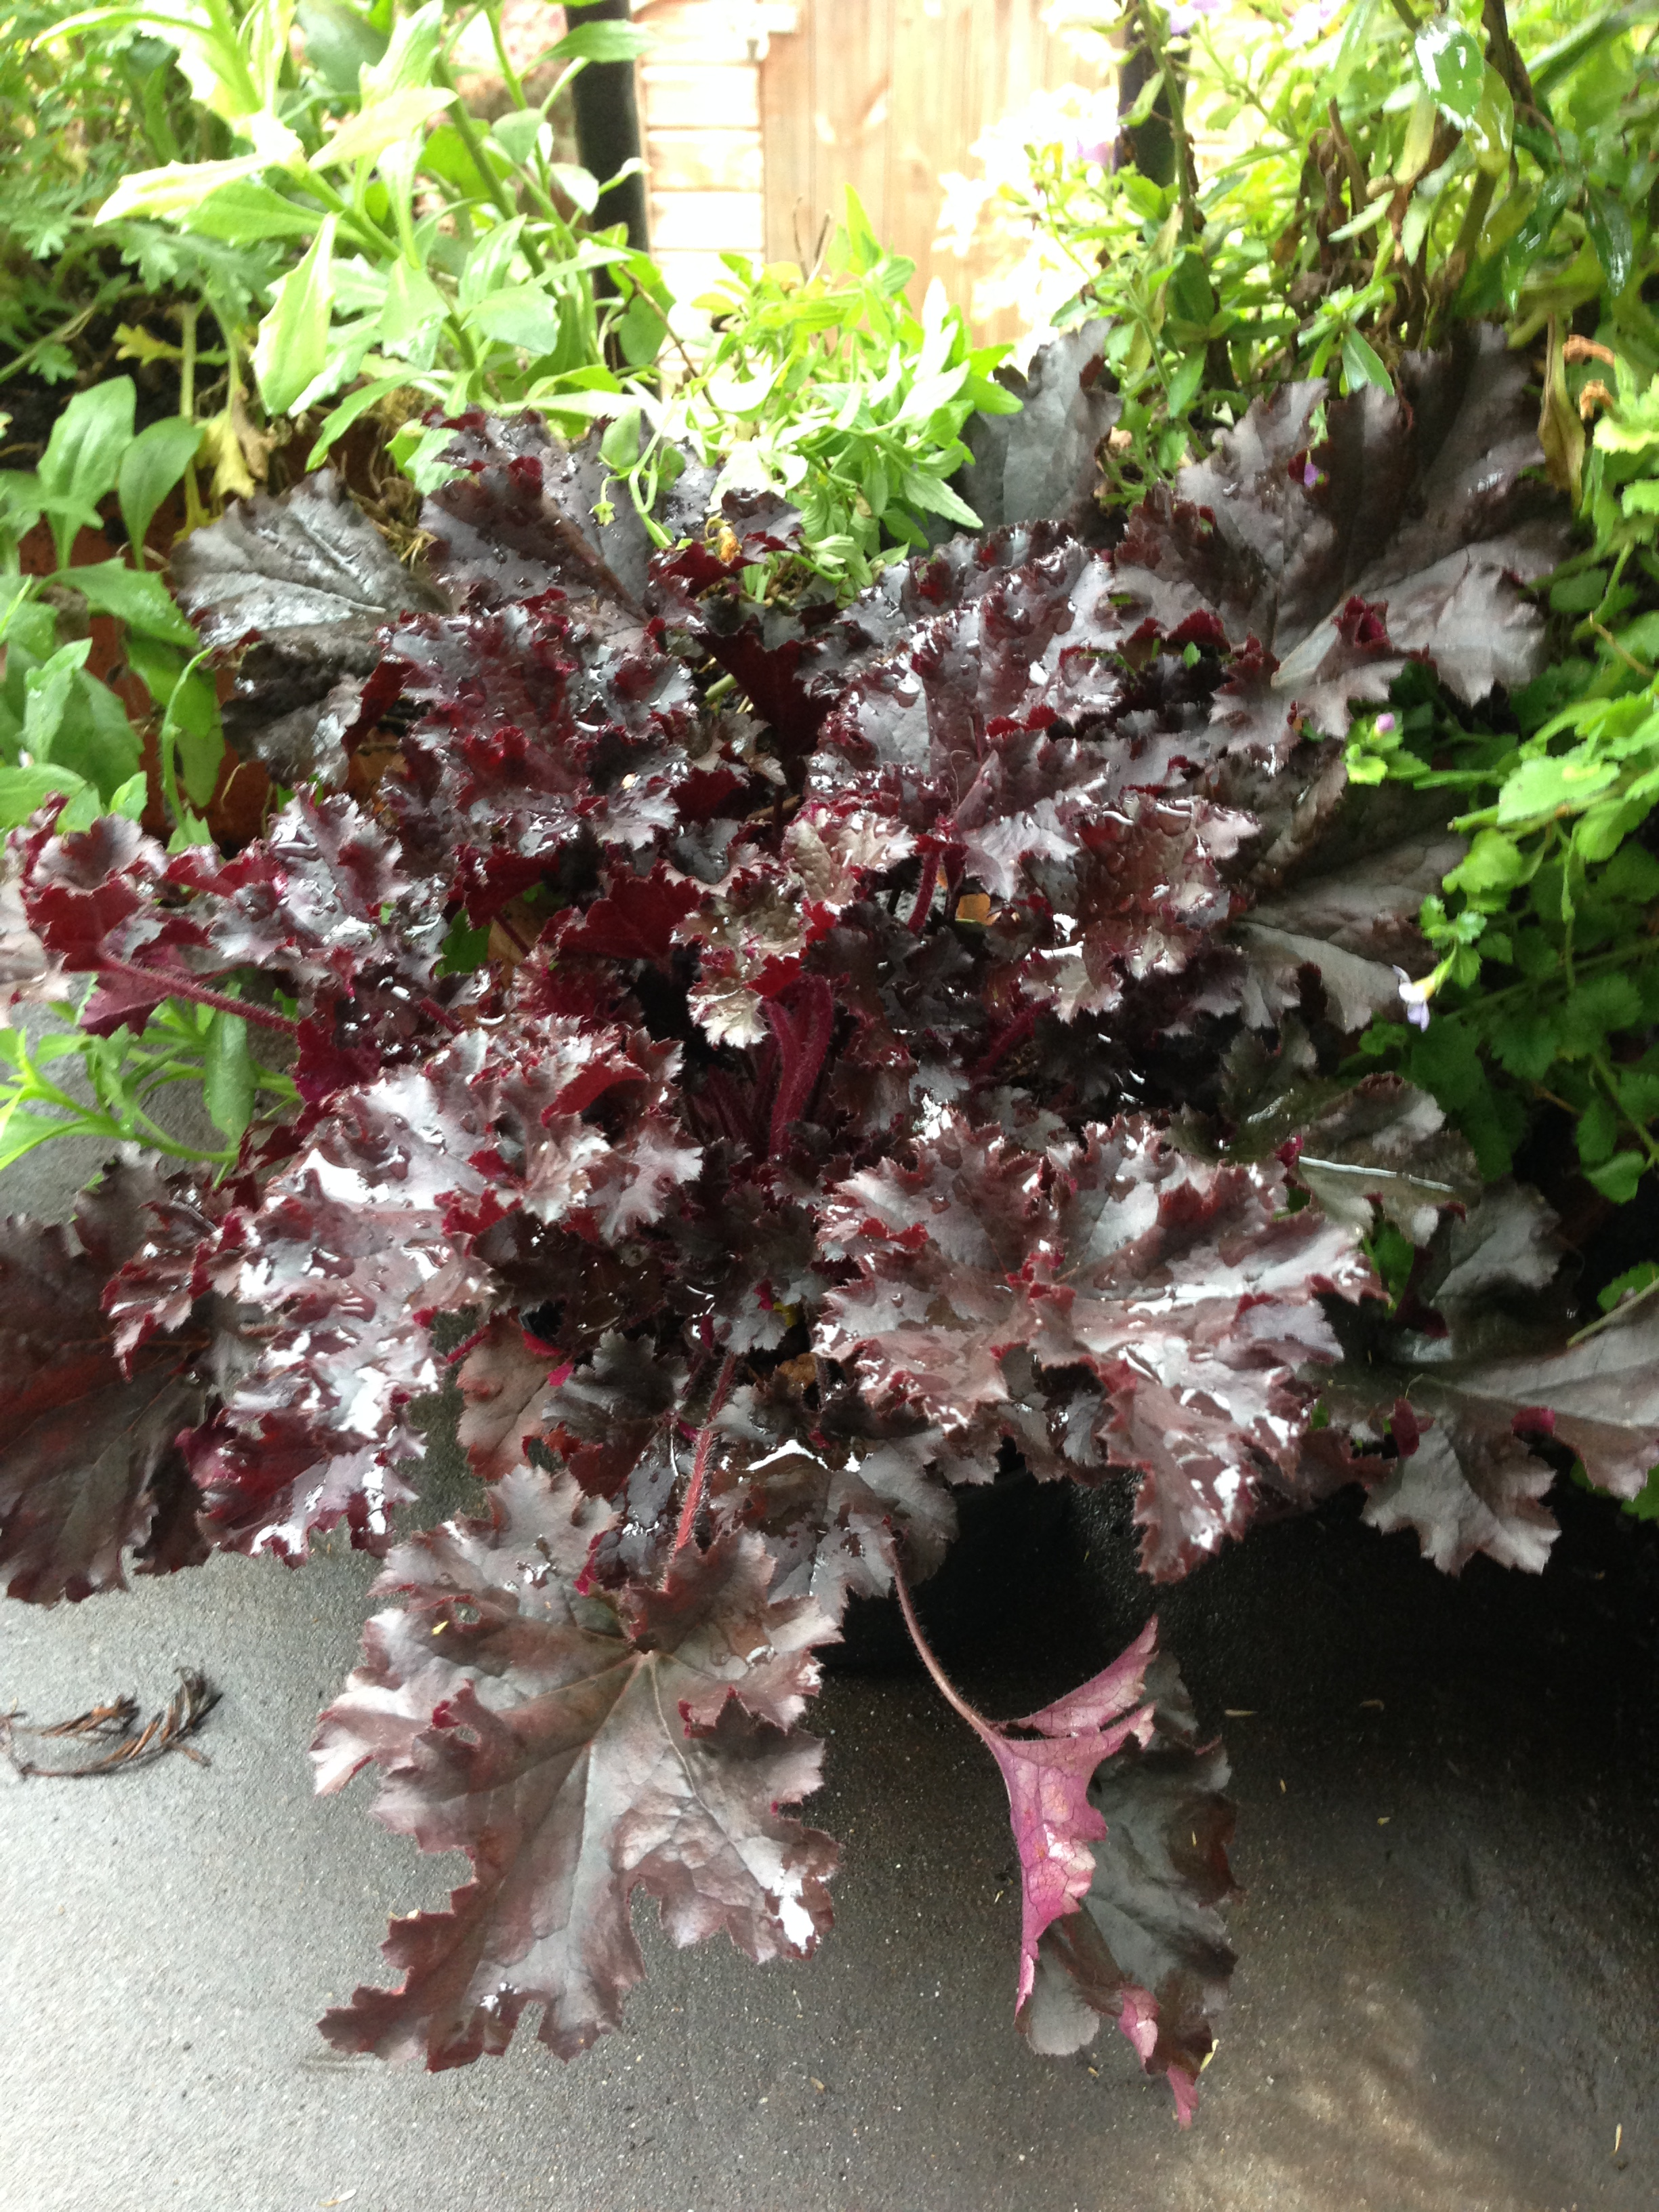 The other Heucherella that I bought. Isn't the colour amazing?